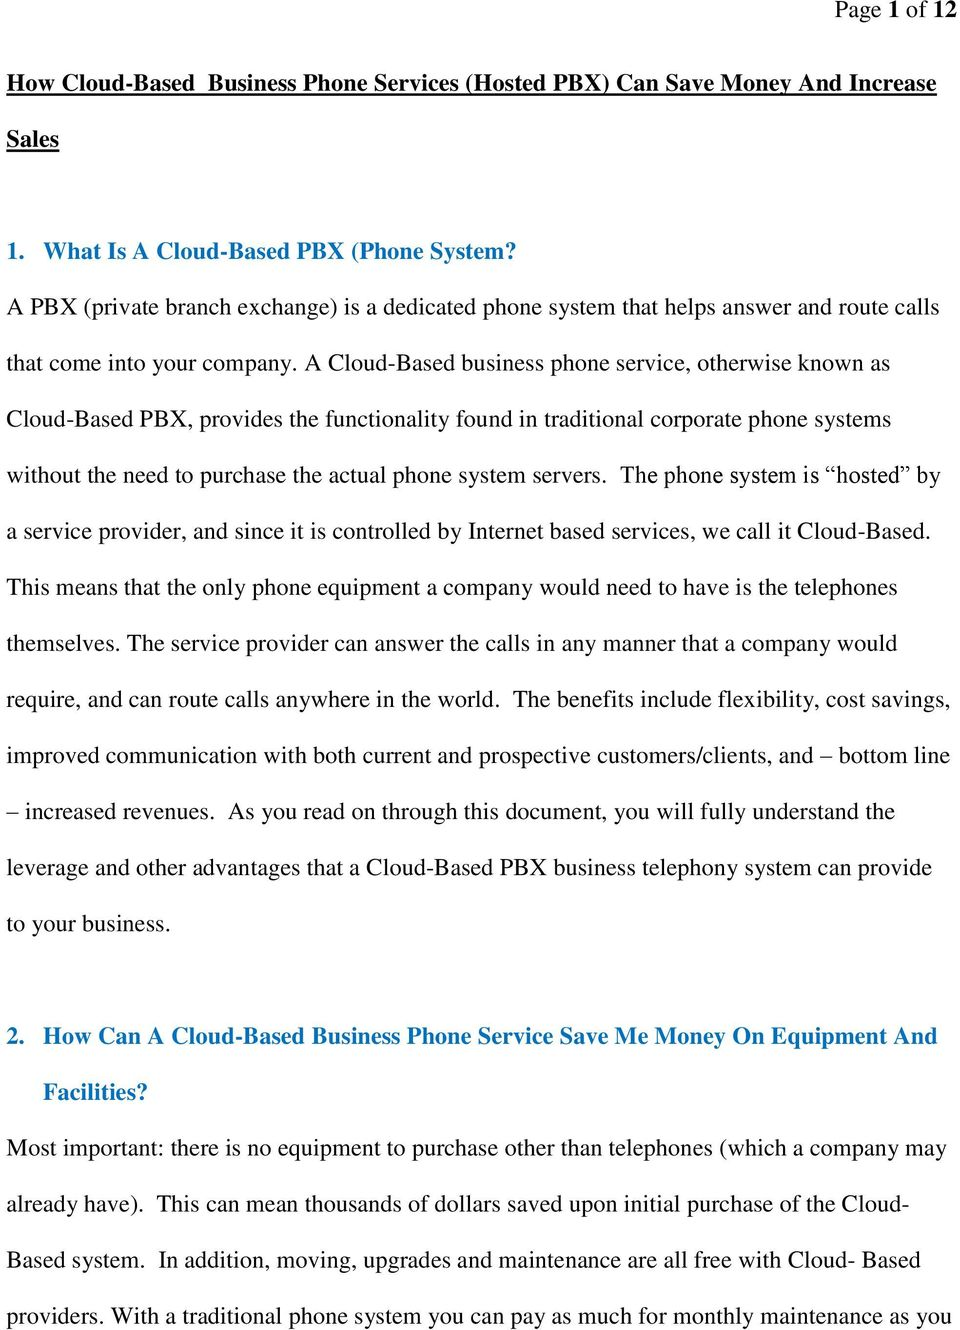 A Cloud-Based business phone service, otherwise known as Cloud-Based PBX, provides the functionality found in traditional corporate phone systems without the need to purchase the actual phone system